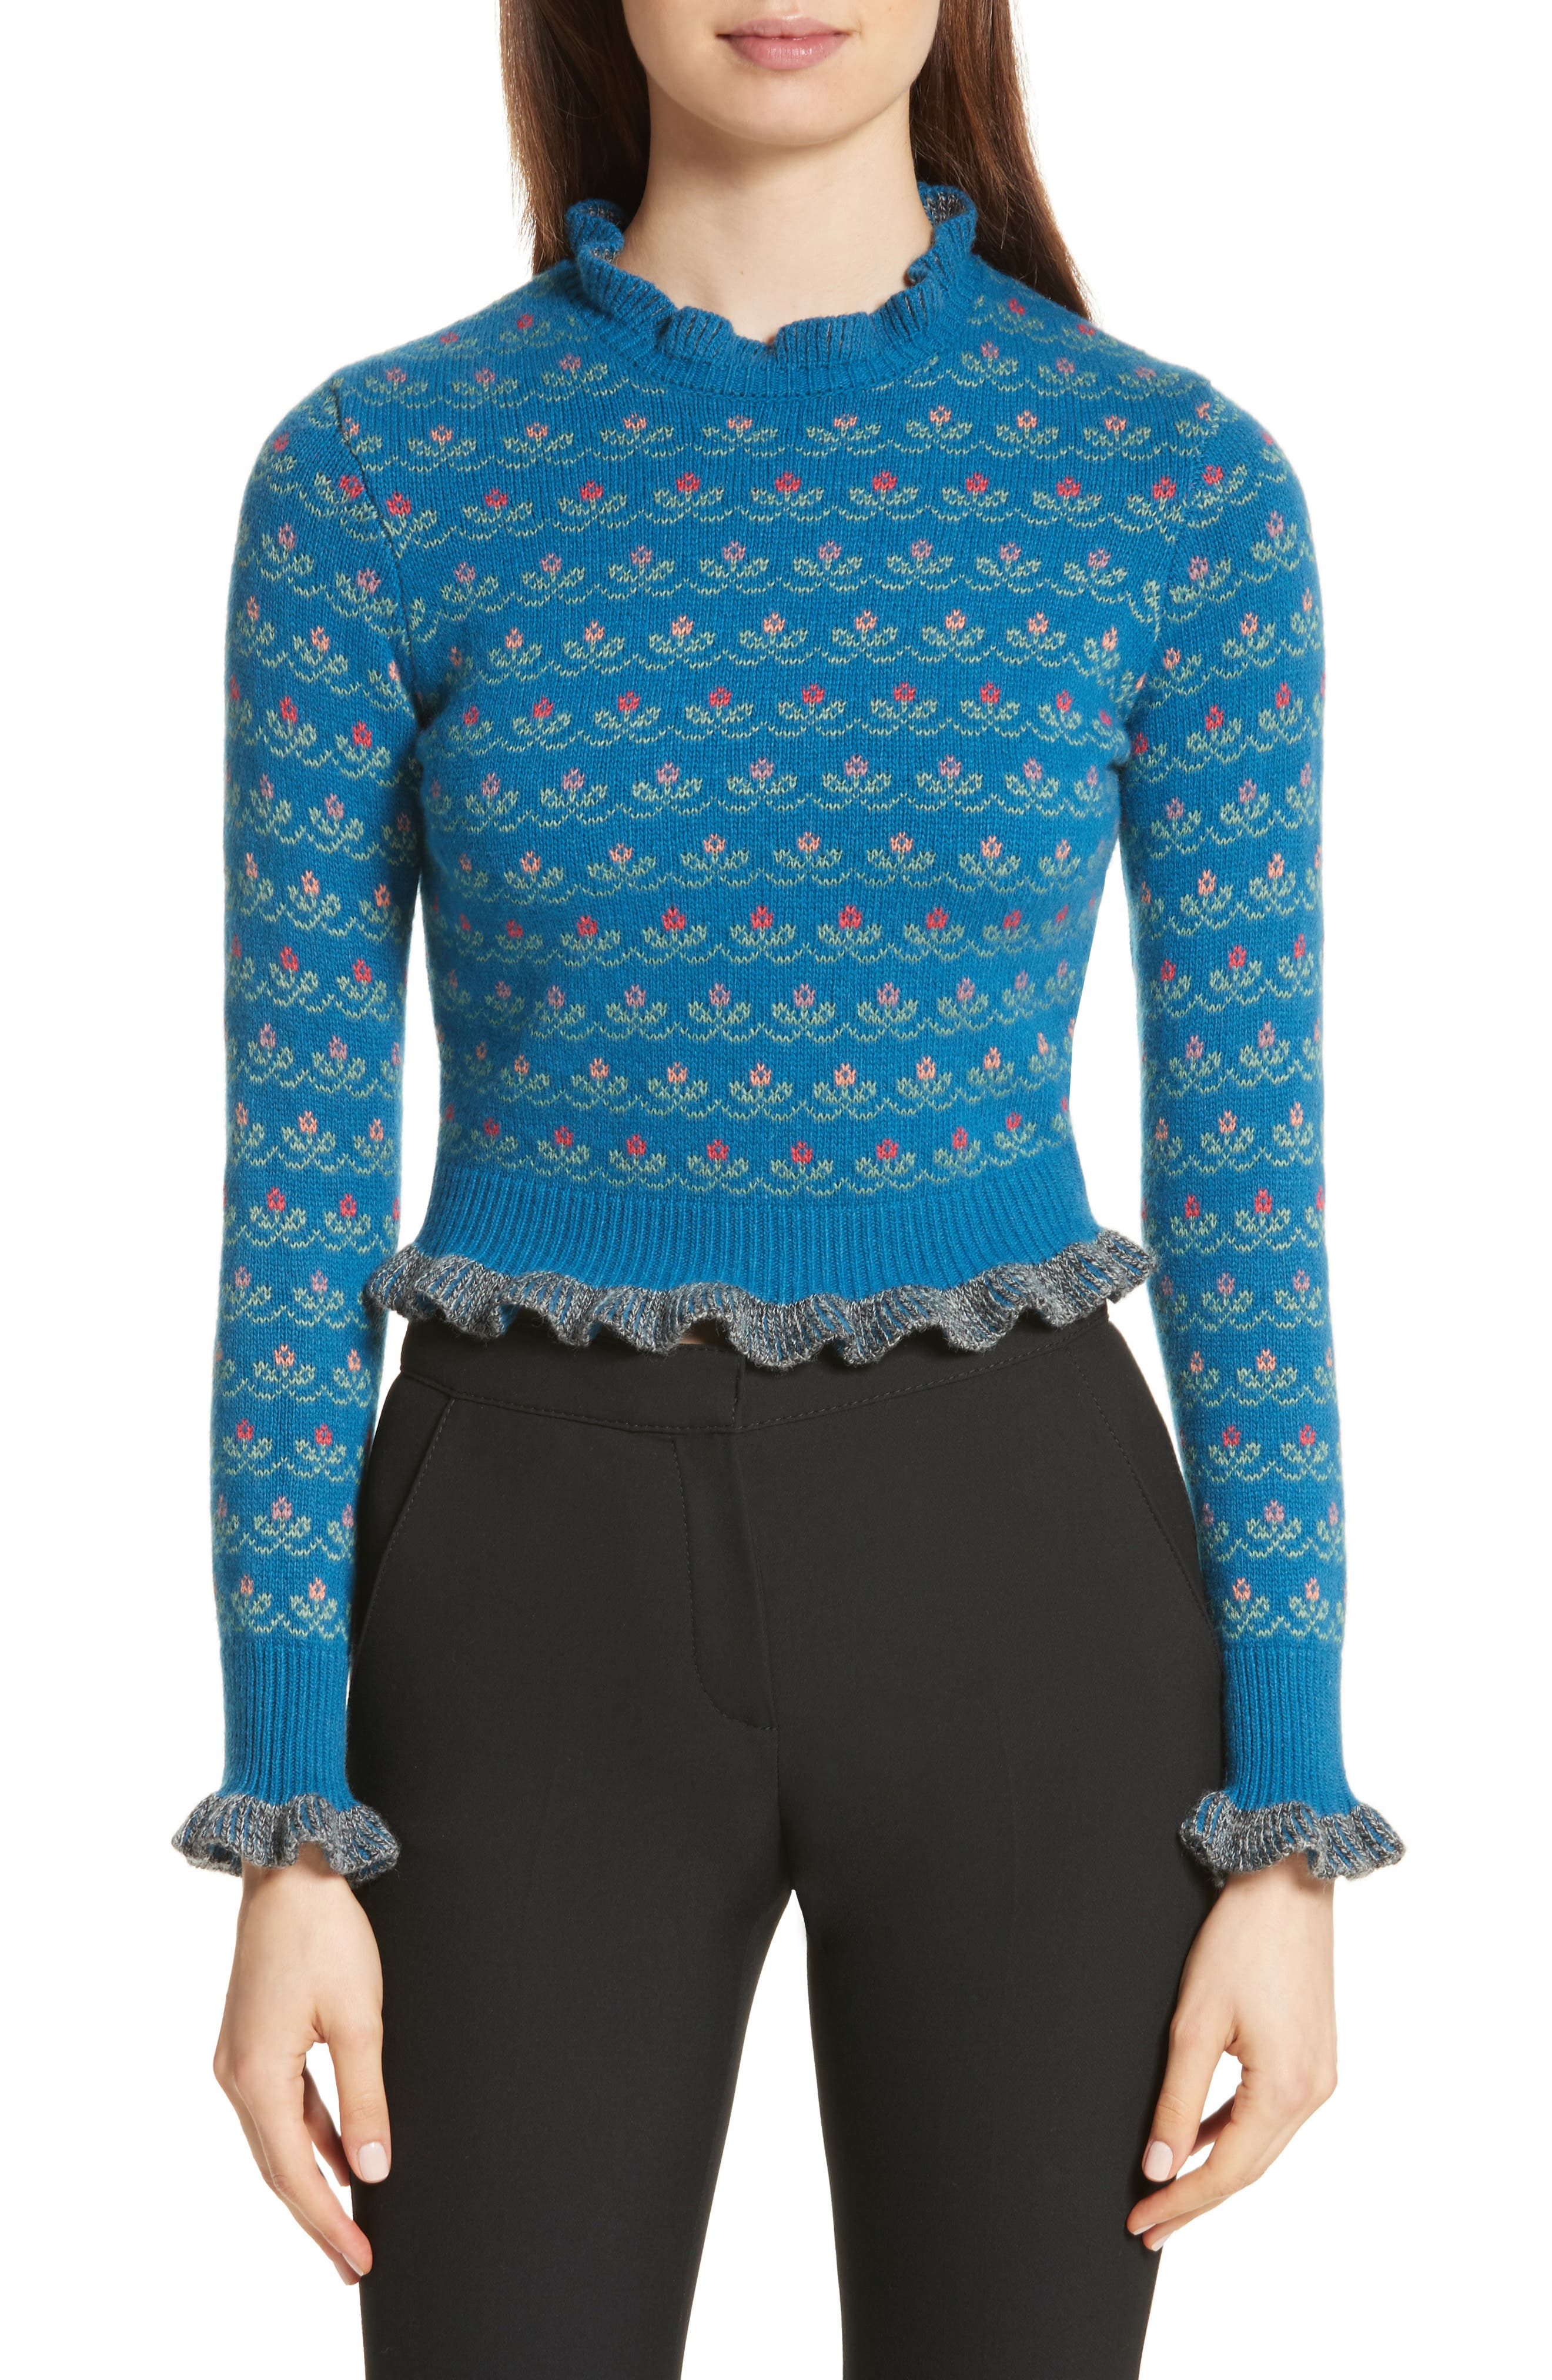 Floral Jacquard Carded Wool Blend Sweater,                             Main thumbnail 1, color,                             Lapislazzuli